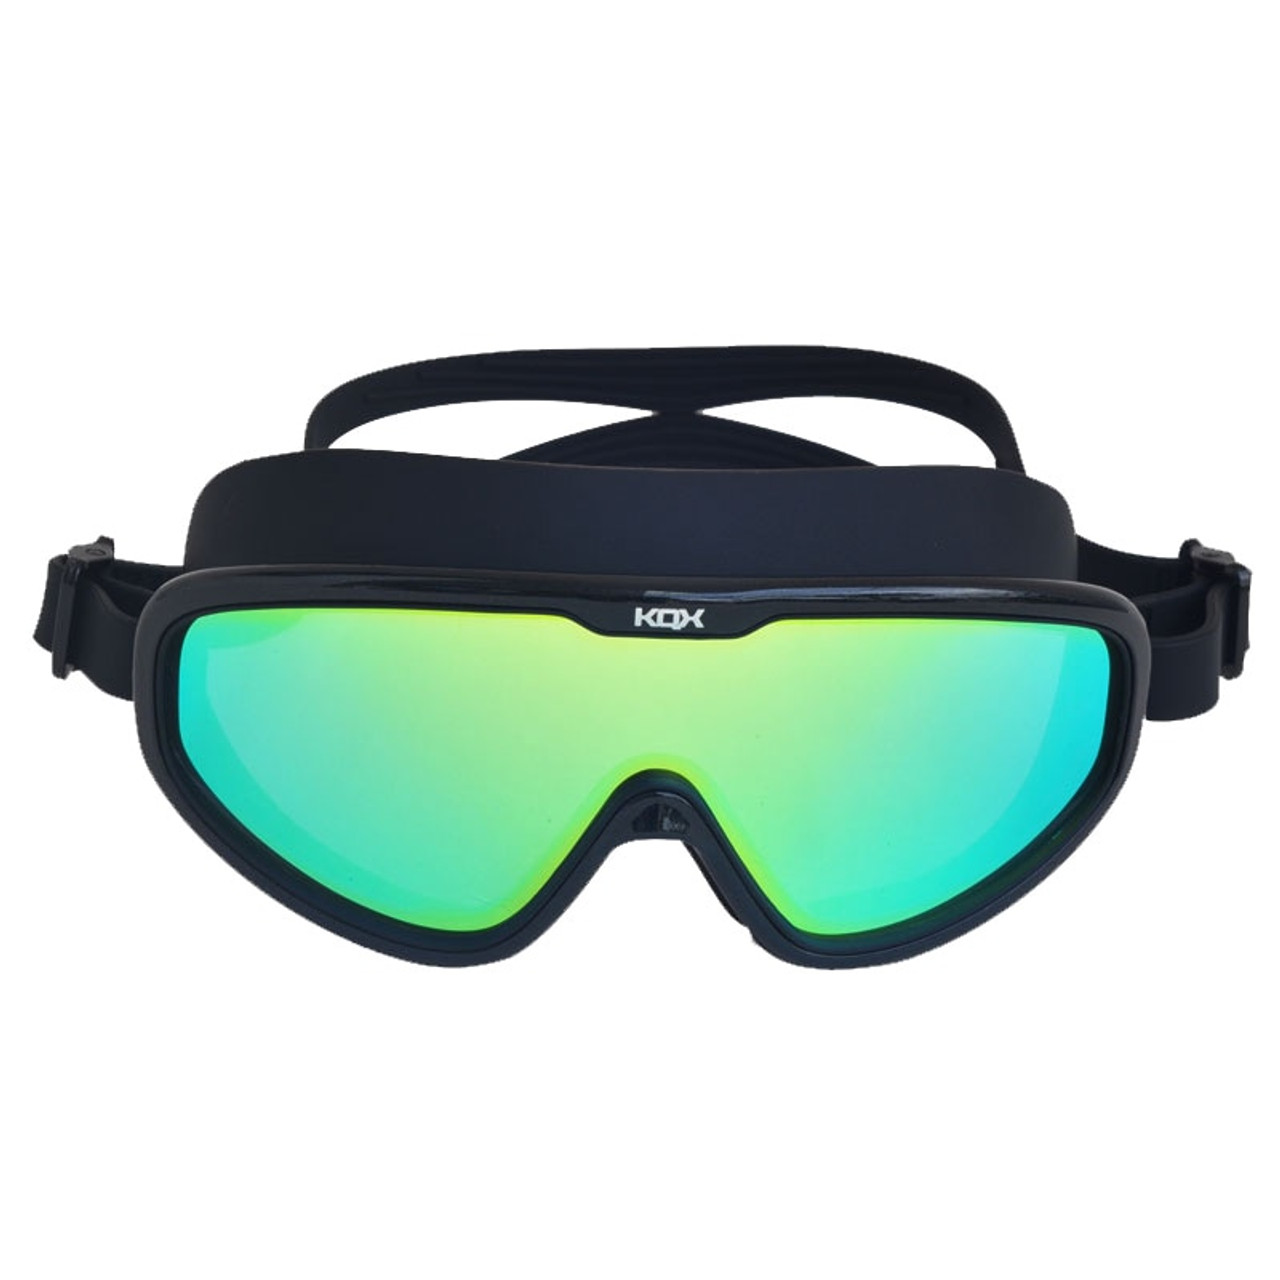 926b9a67fab ... Professional big frame Anti-Fog UV Swimming glasses silicone Waterproof  Swim goggles in Poor for ...